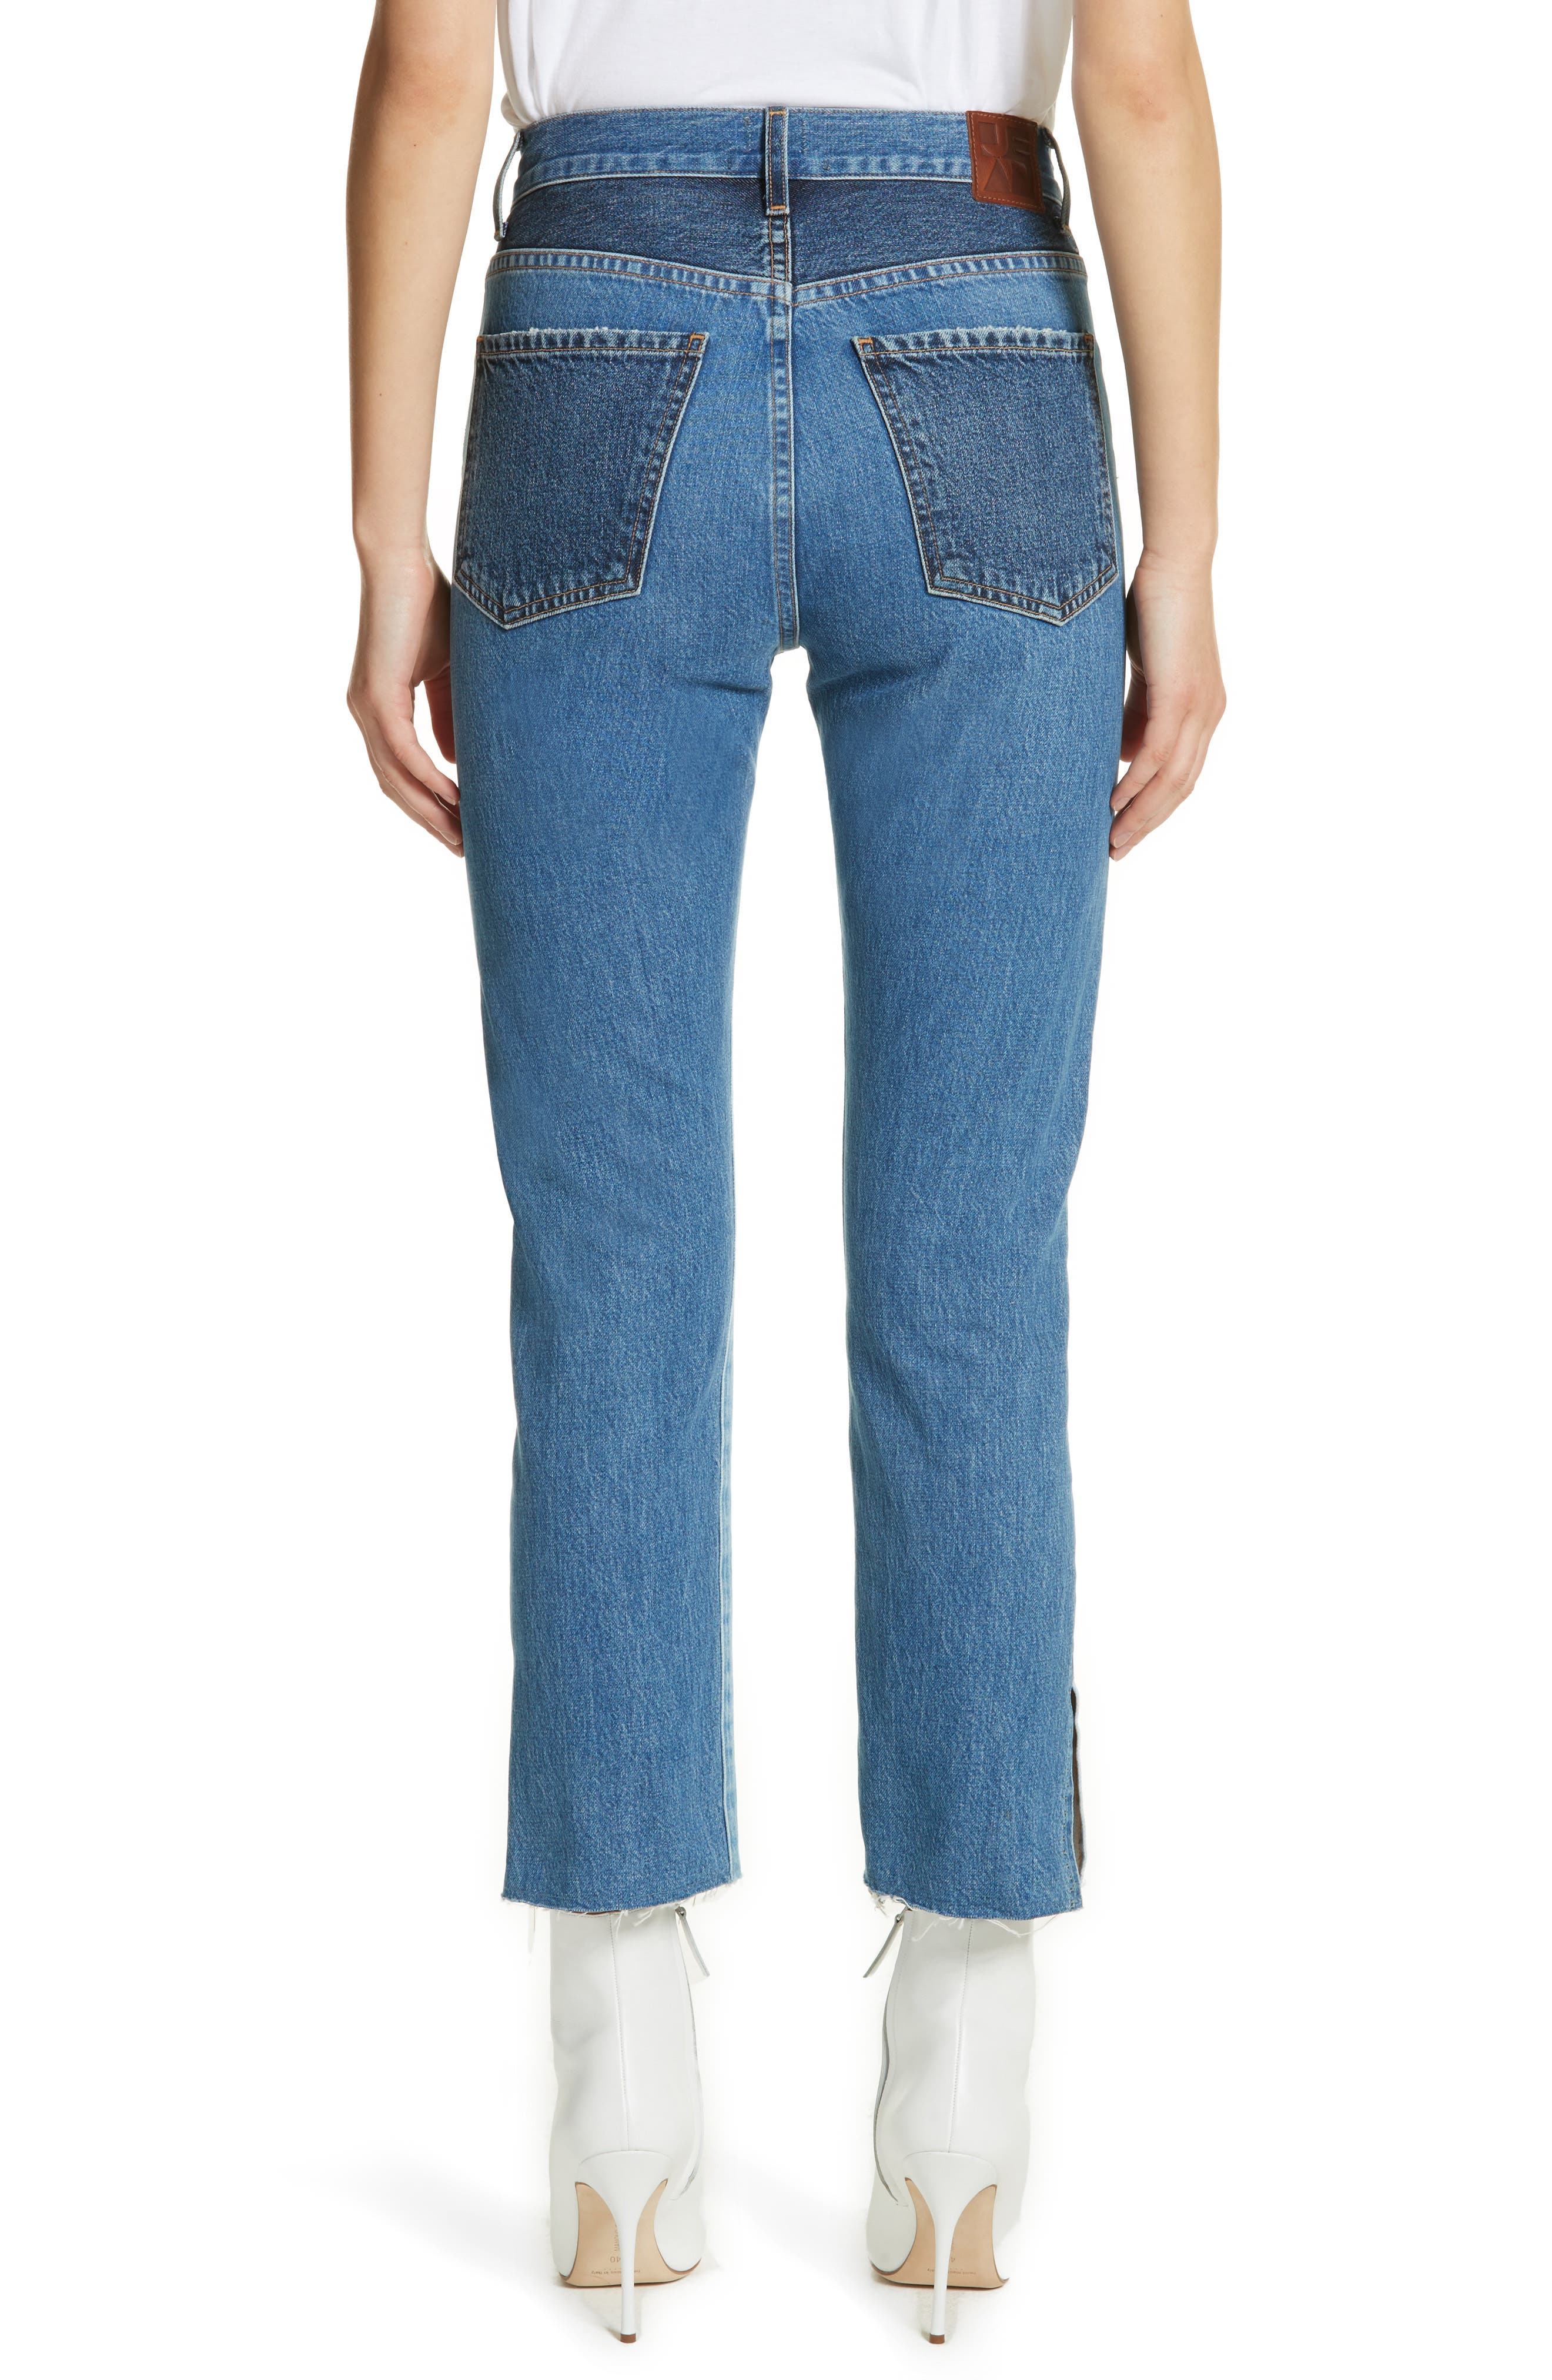 Hunter High Rise Straight Leg Crop Jeans,                             Alternate thumbnail 2, color,                             424